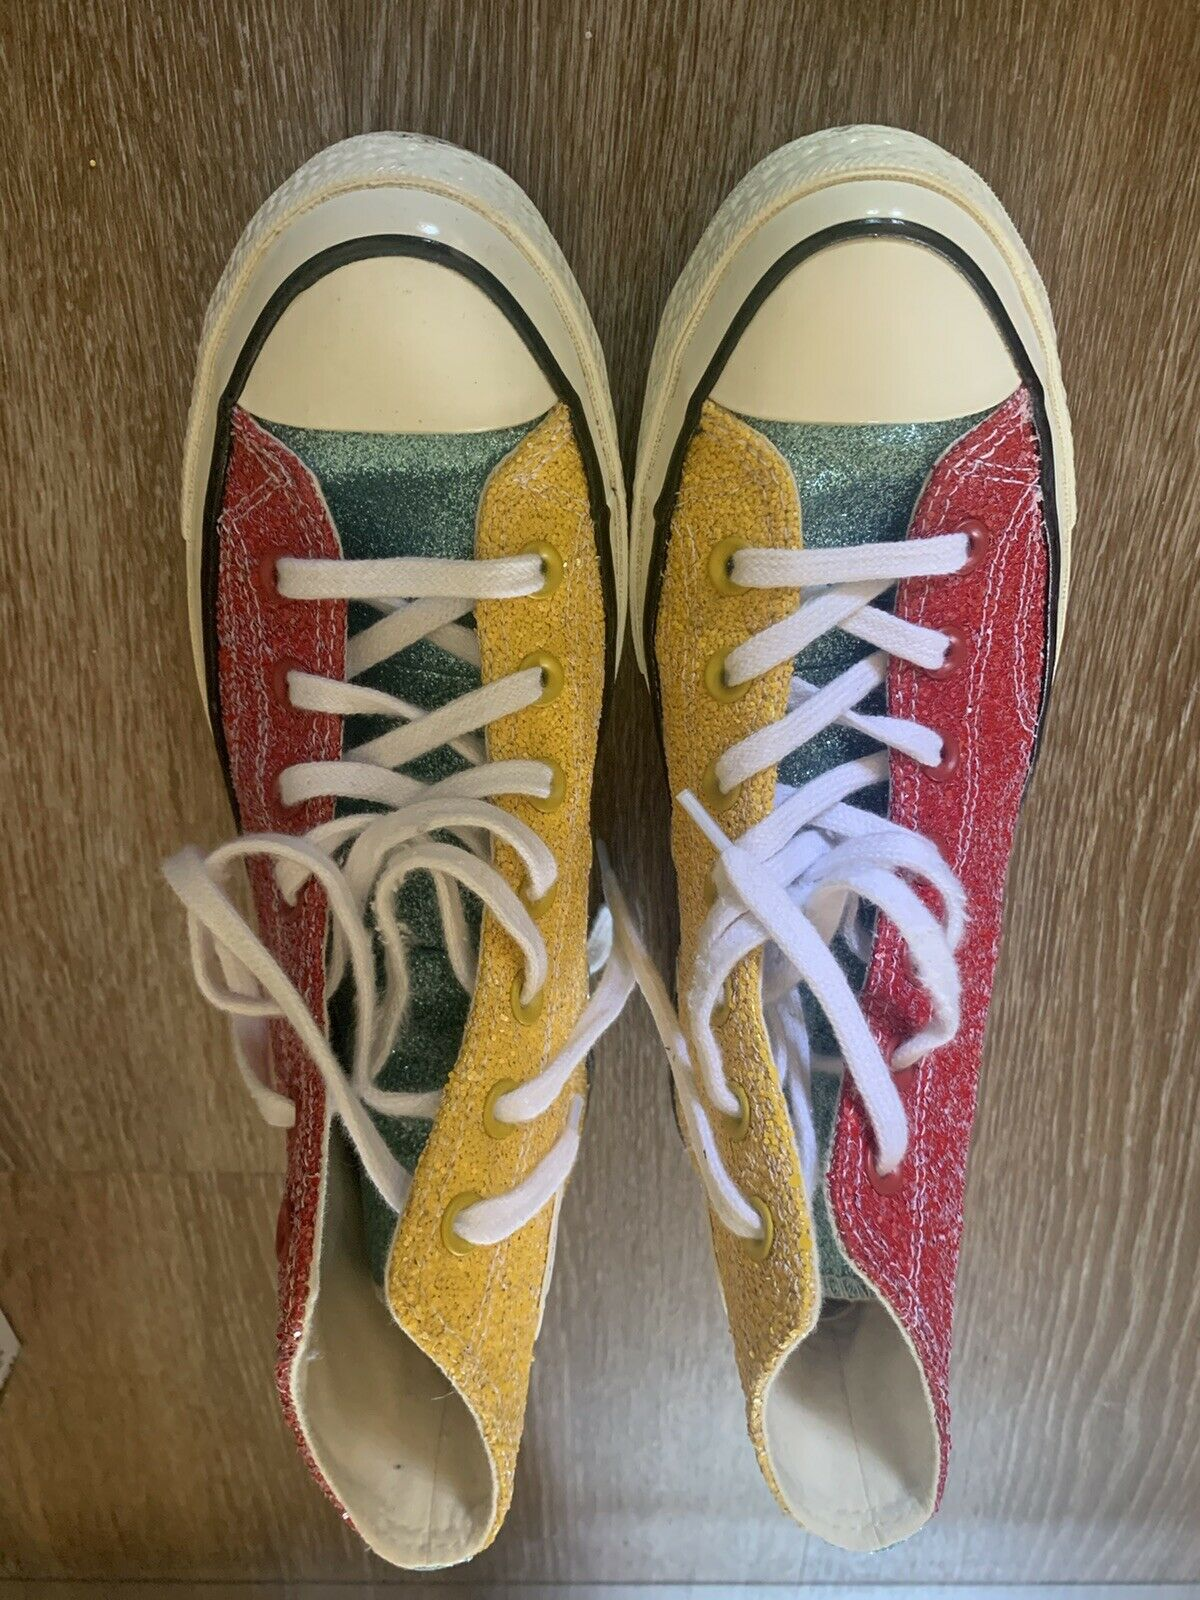 Converse Chuck Taylor All Star 70s Hi JW Anderson Glitter Yellow Red